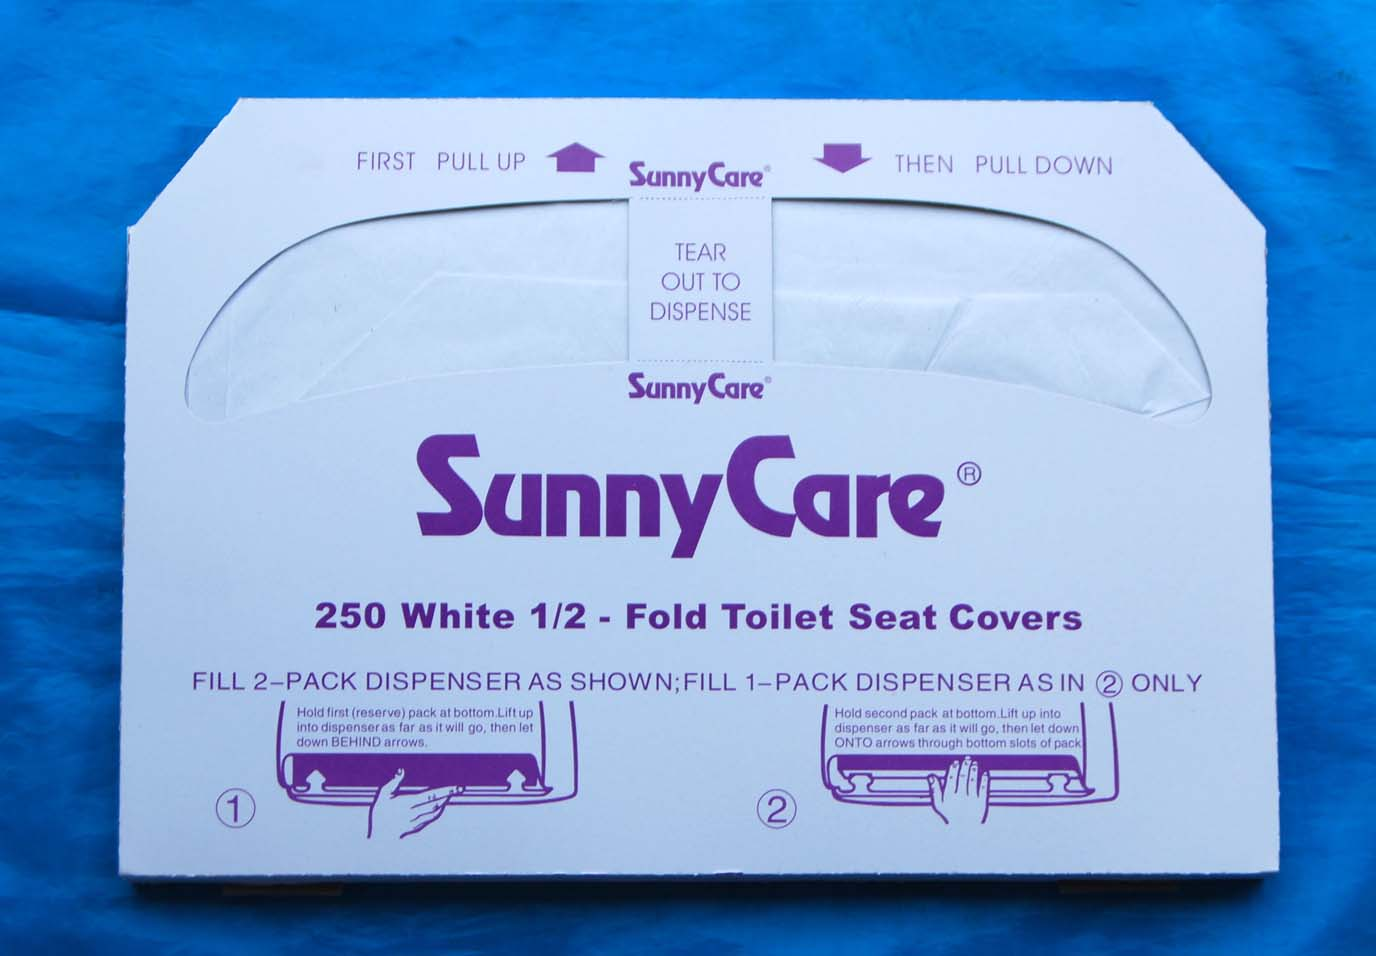 Flushable 1/2 Fold Toilet Seat Cover